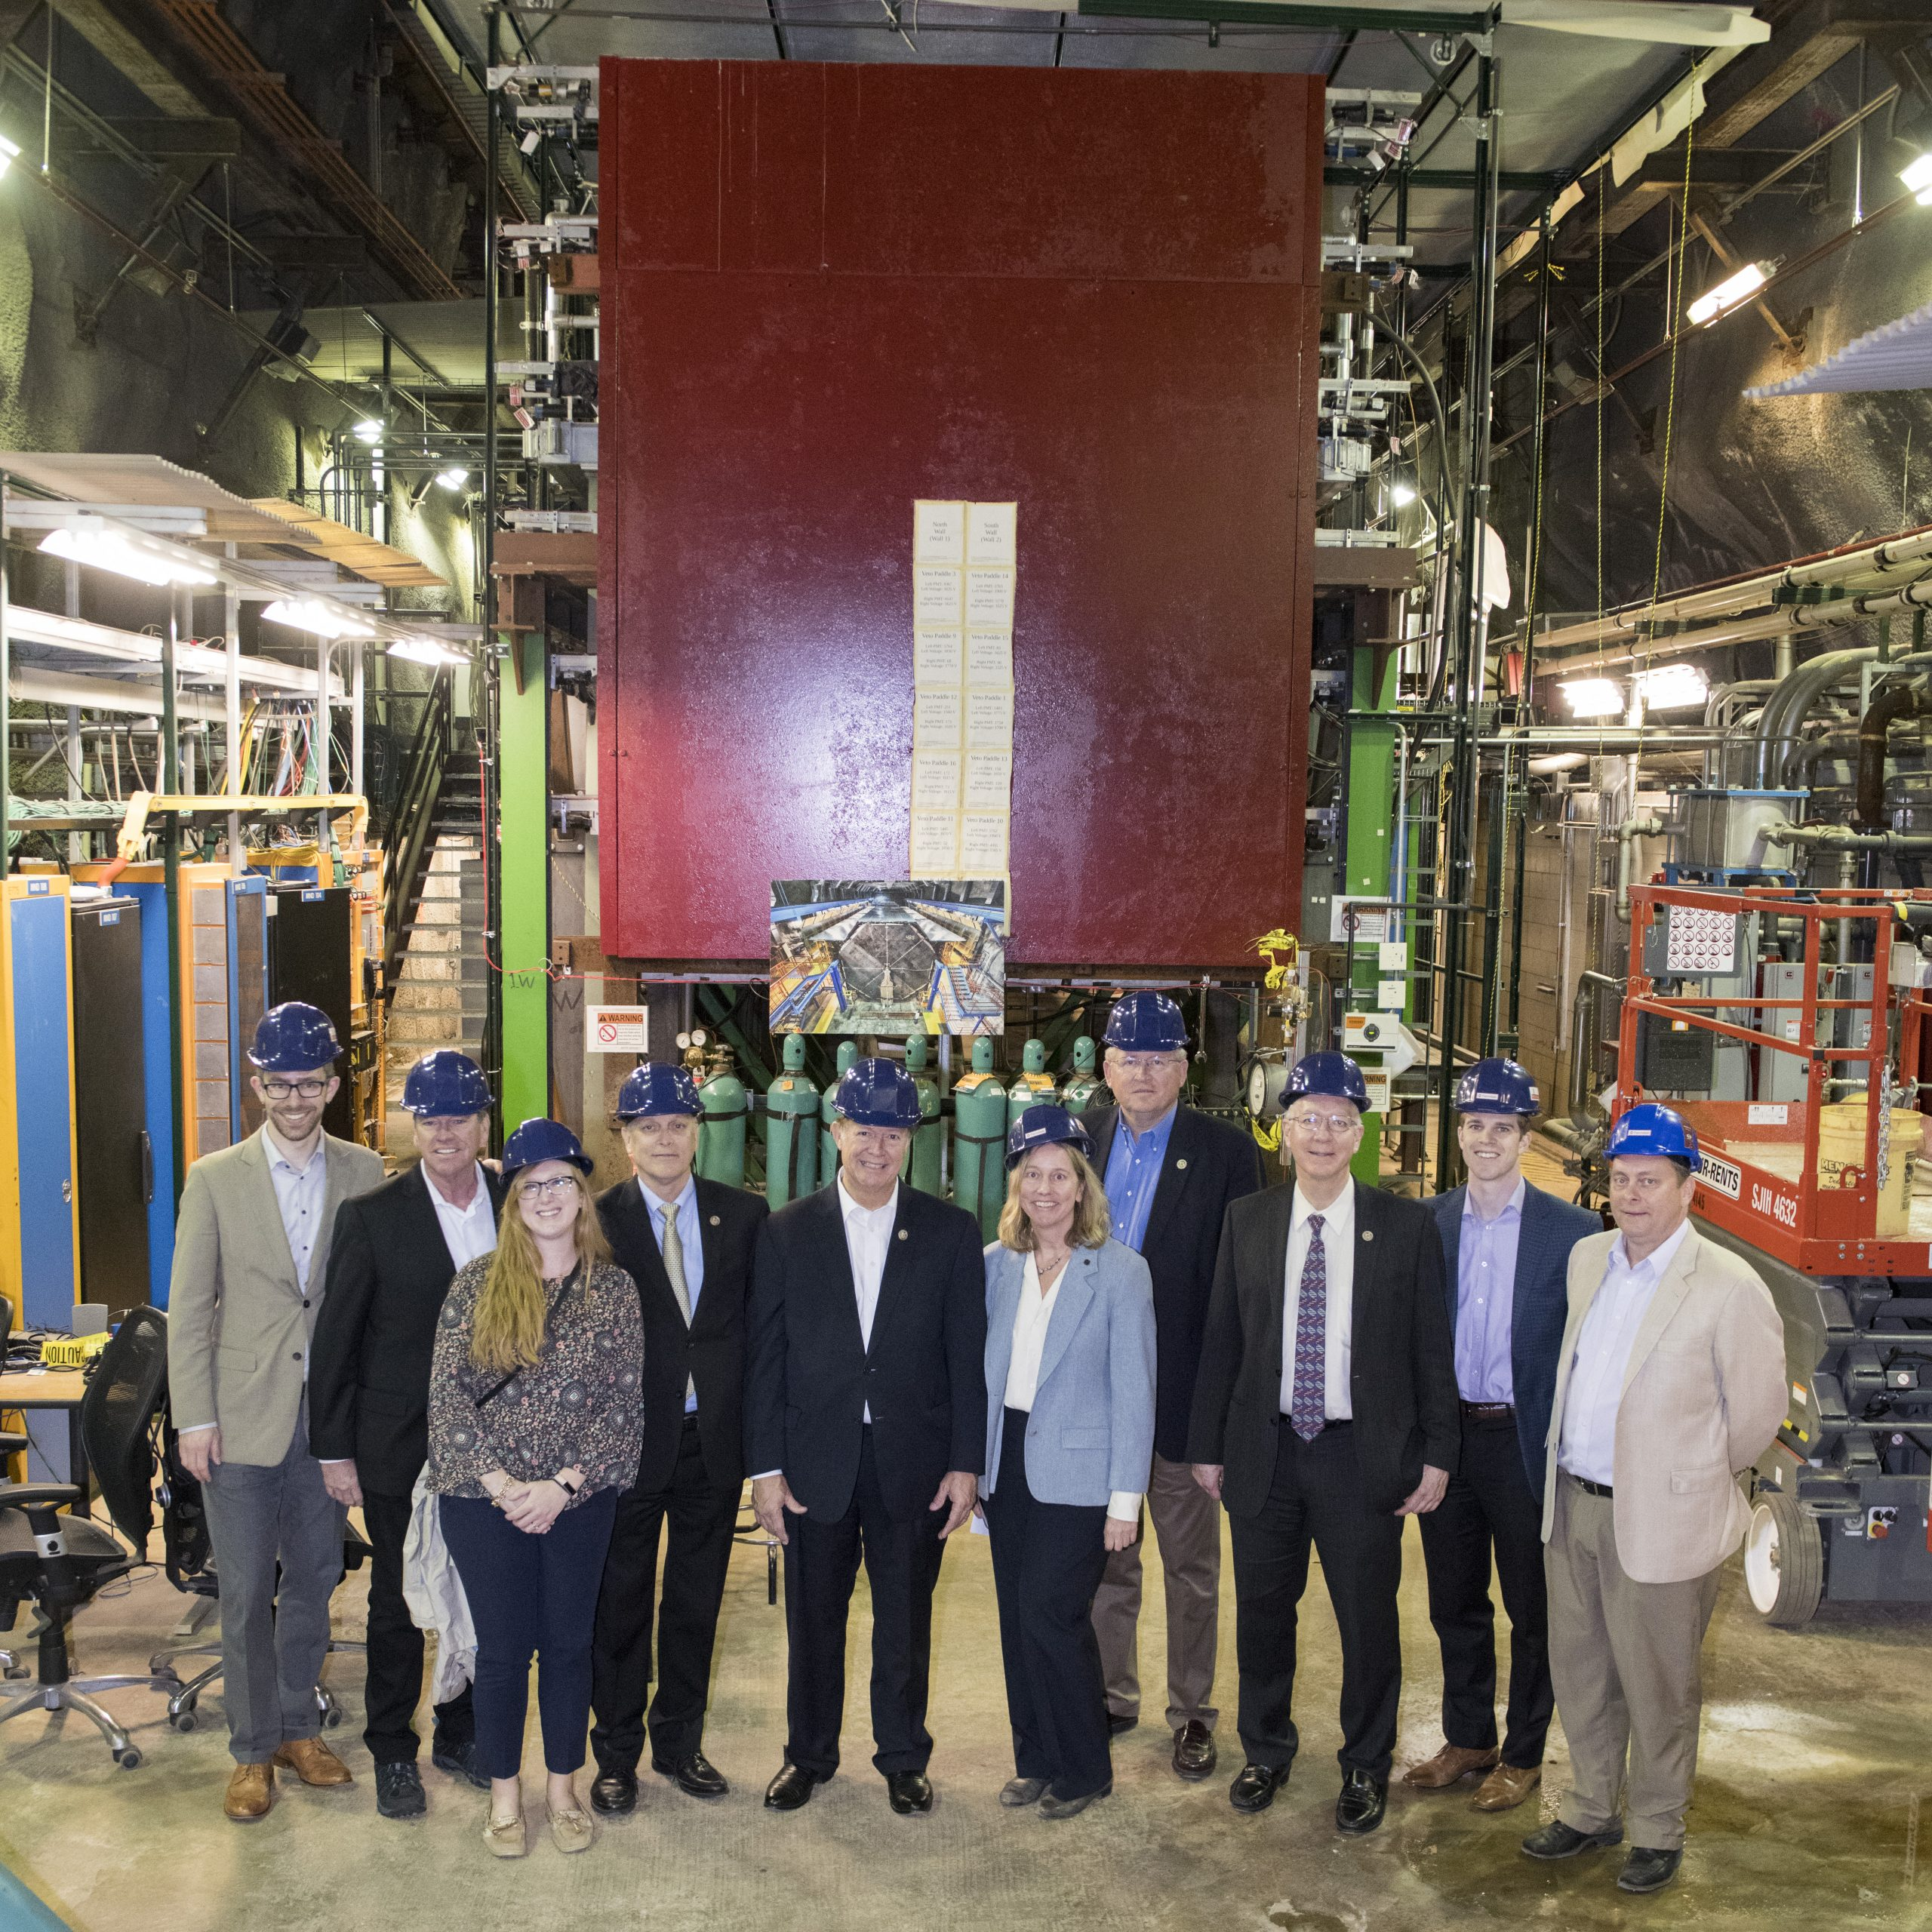 A tour of the MINERvA neutrino experiment was one of the highlights of the program for members and staff of the House Science Committee. Photo: Reidar Hahn